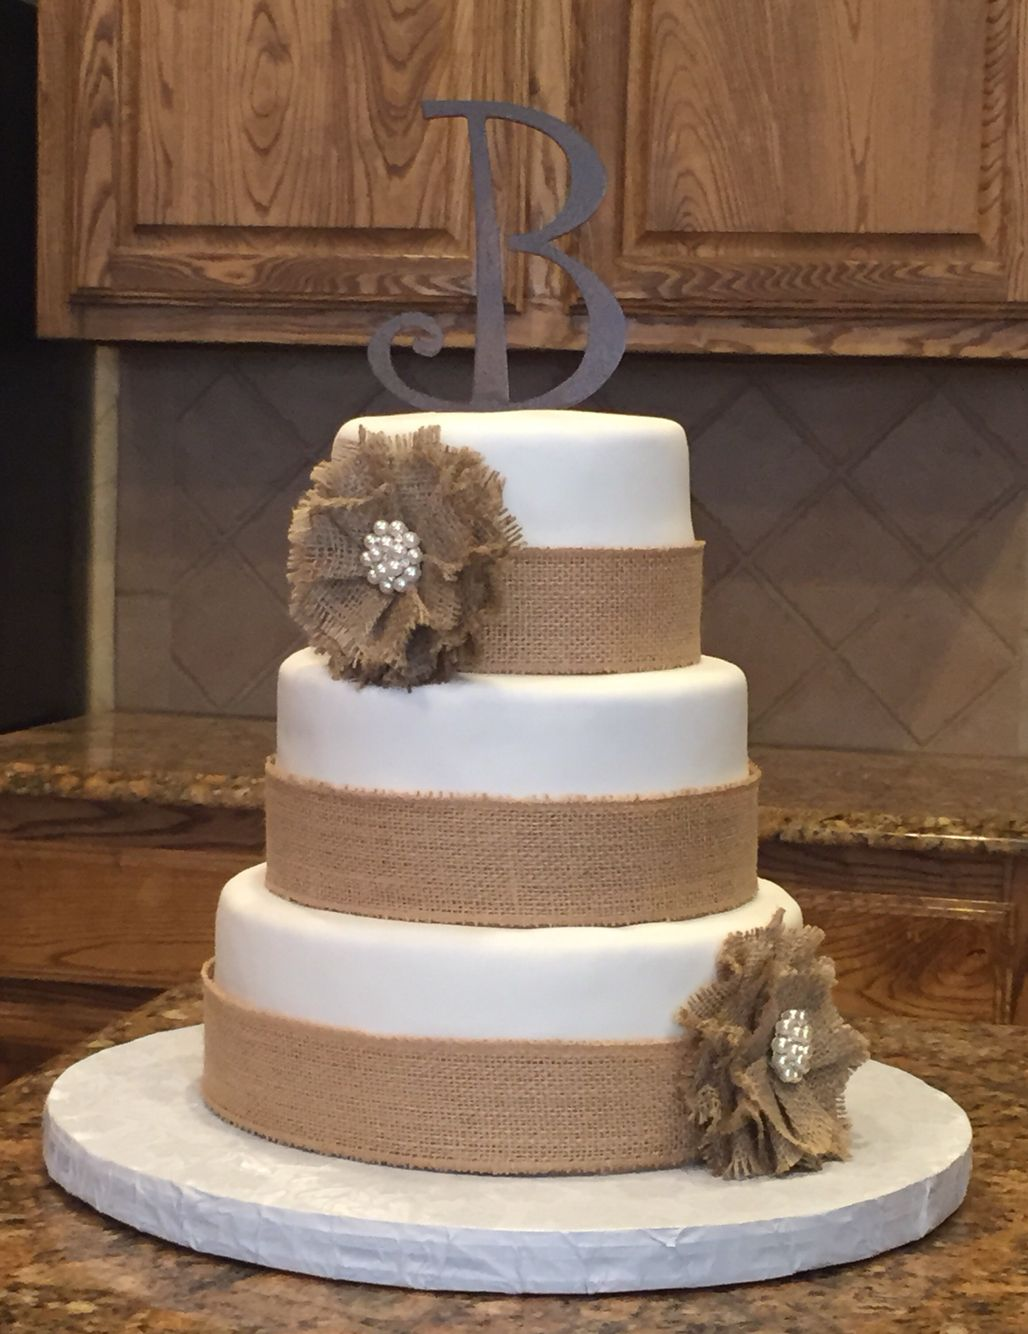 Country wedding cakes pictures - Chabby Chic Wedding Cake Country Wedding Cake With Burlap Accents